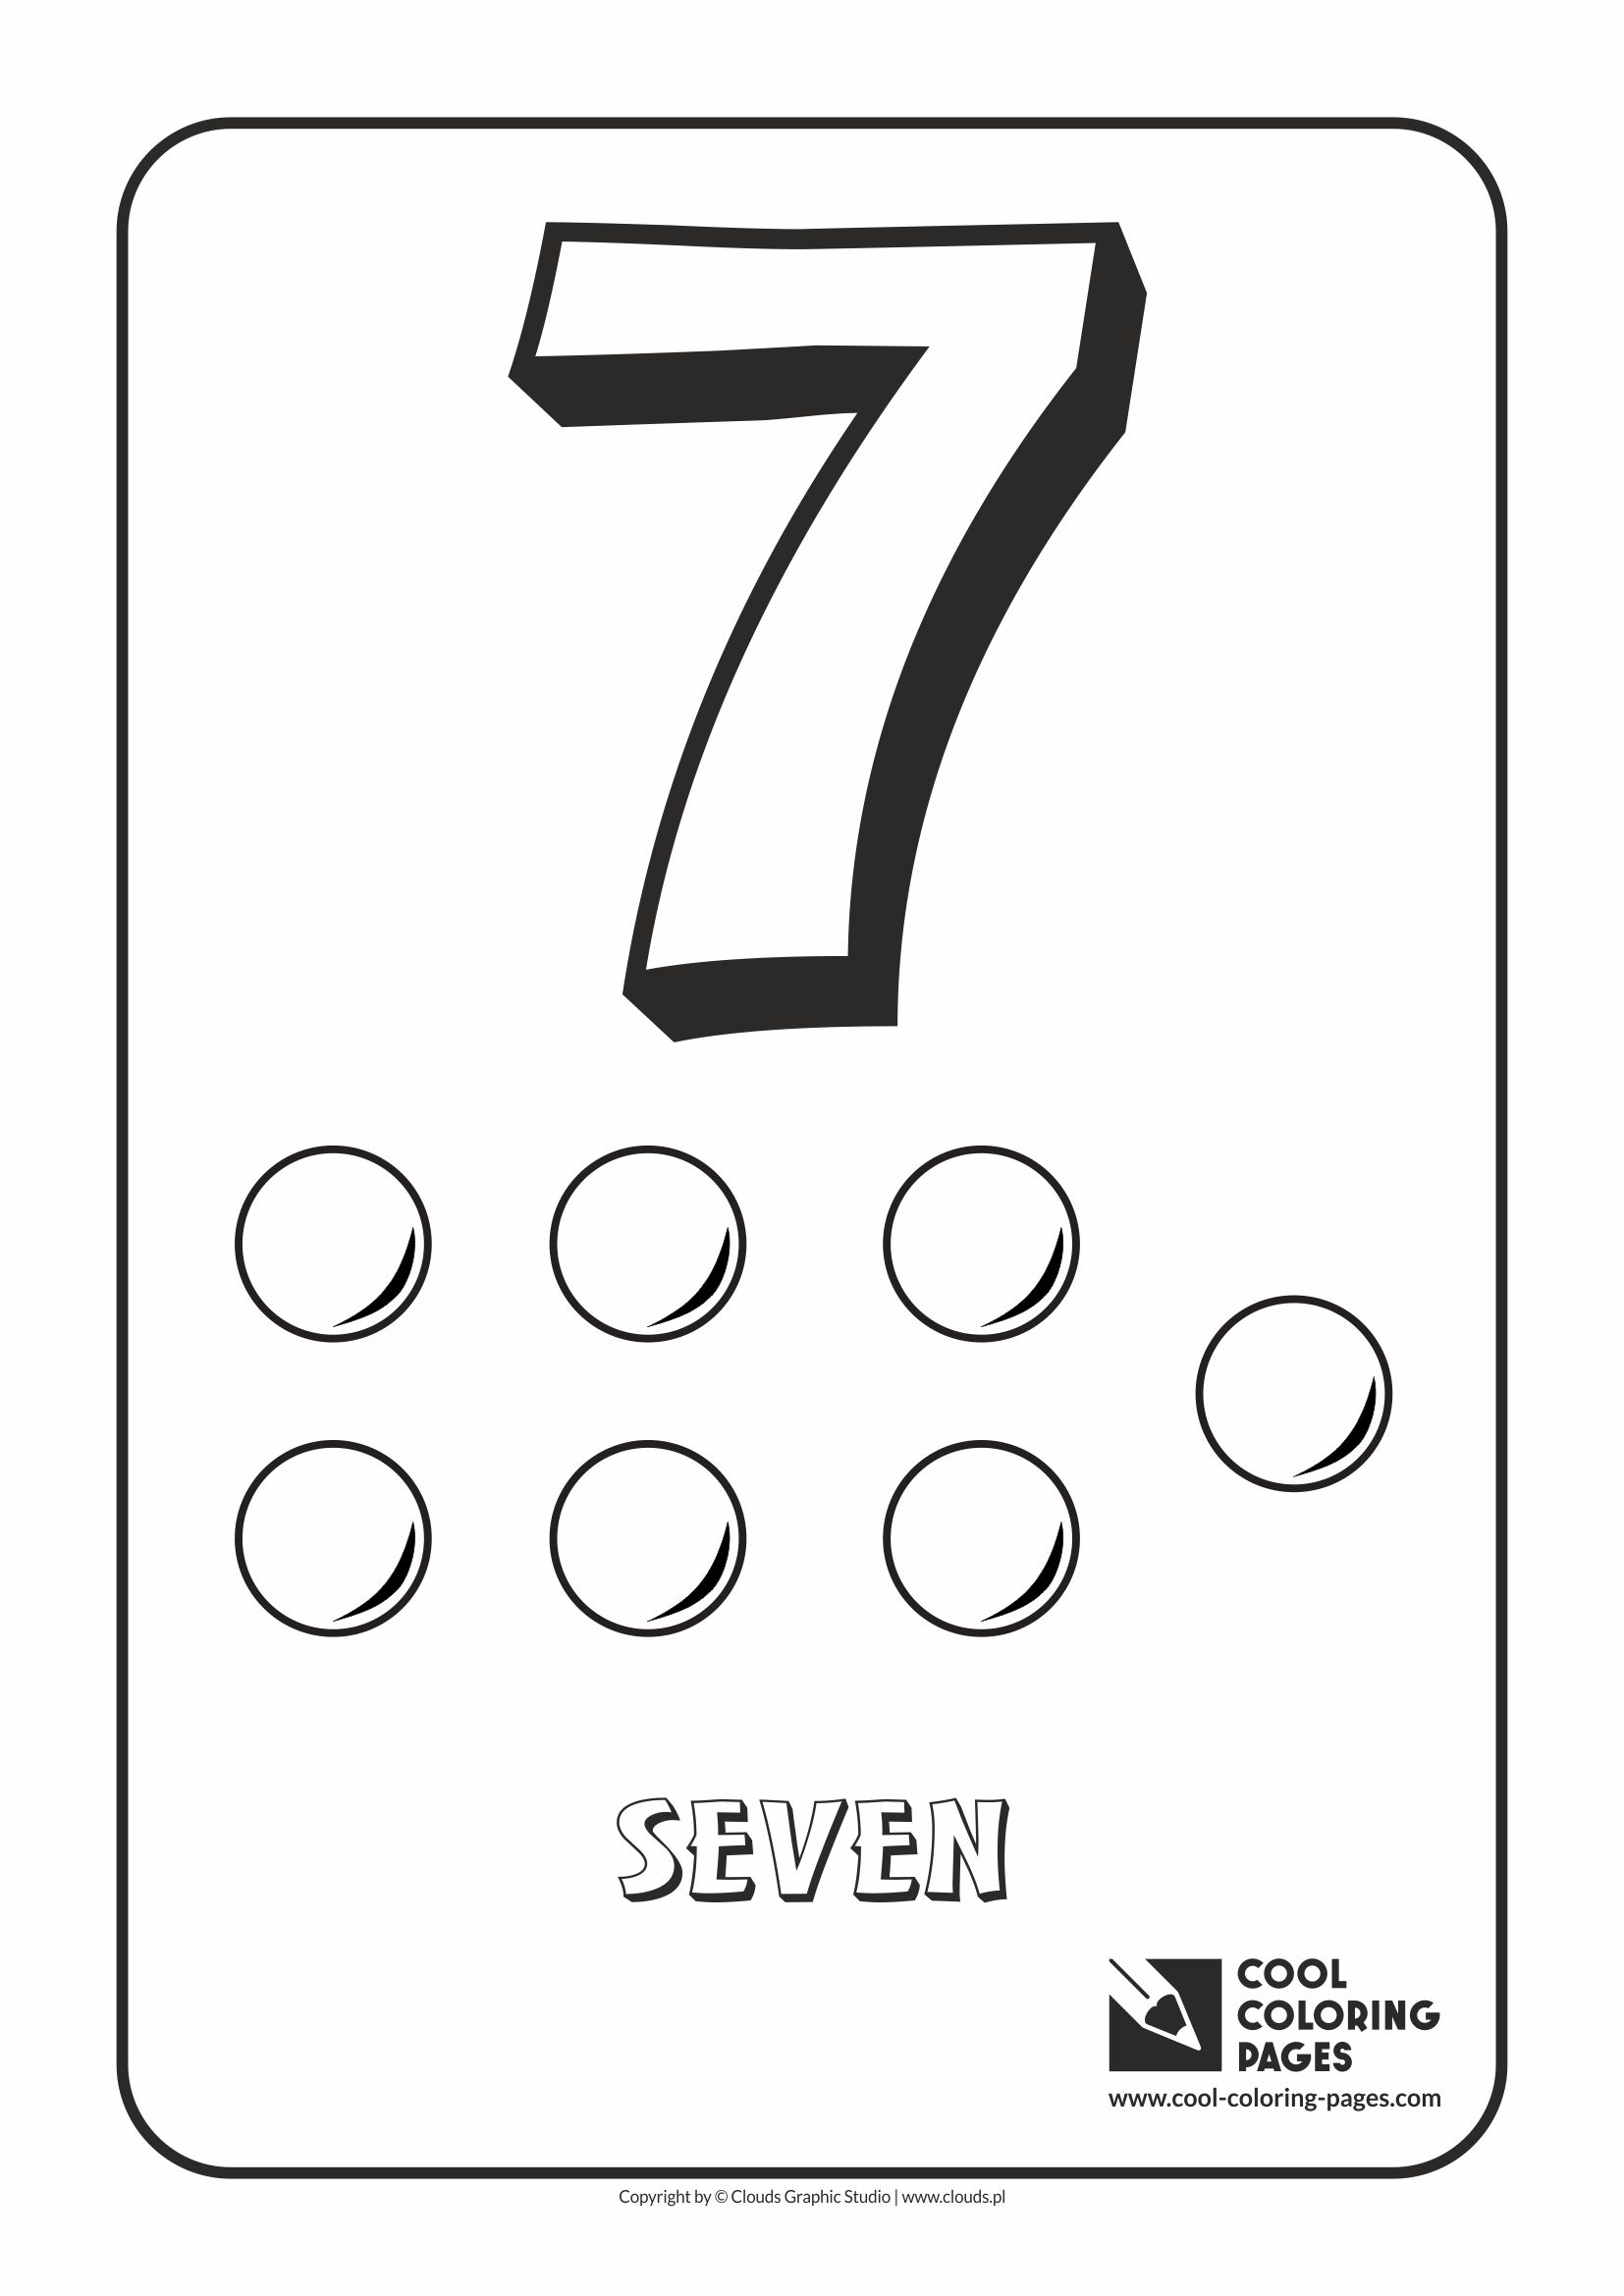 Cool Coloring Pages - Digits / Digit 7 / Coloring page with digit 7